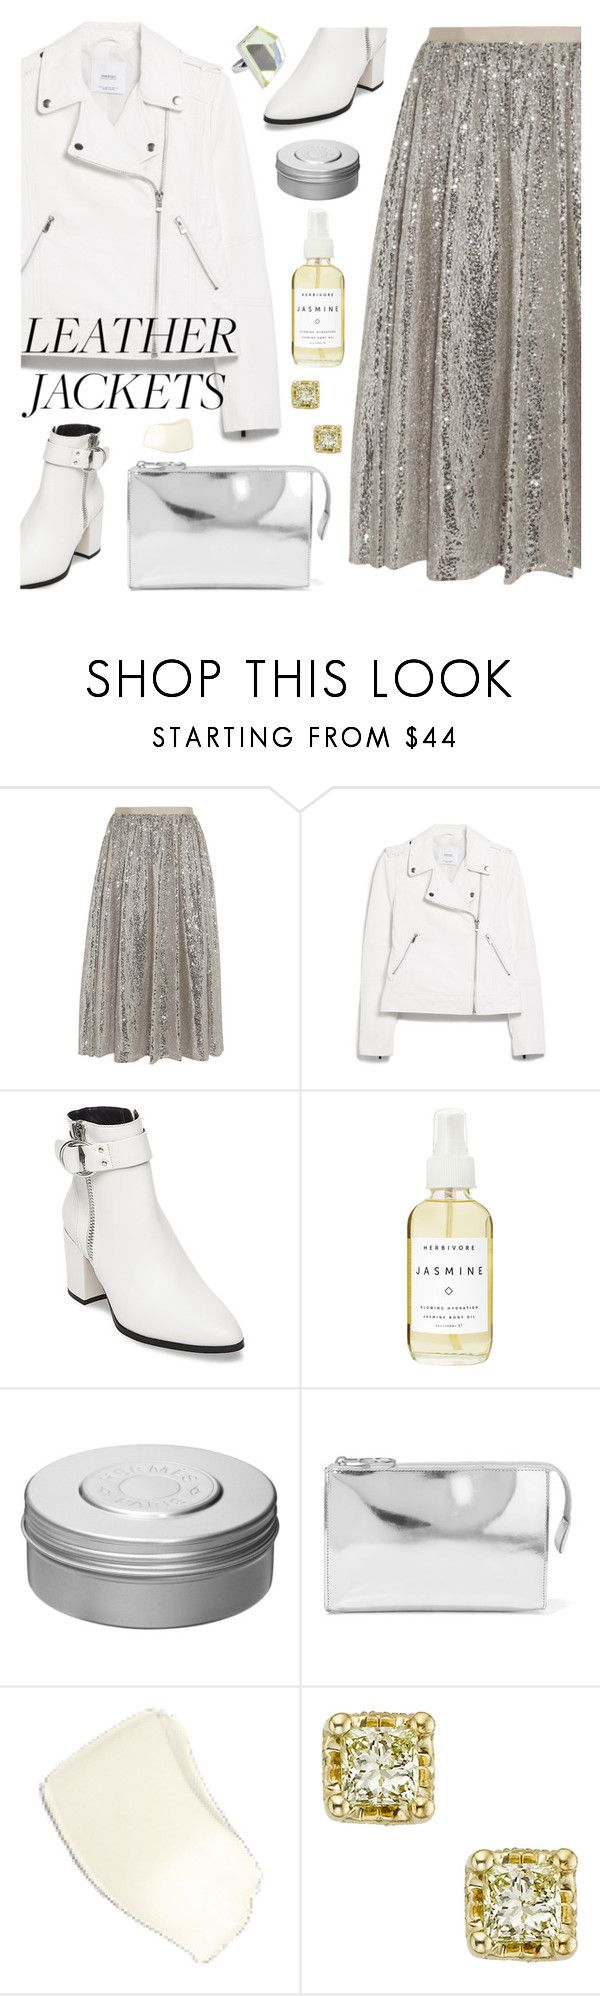 """""""Leather Jackets"""" by deepwinter ❤ liked on Polyvore featuring Alice + Olivia, MANGO, Steve Madden, Herbivore, Hermès, MM6 Maison Margiela and leatherjackets"""